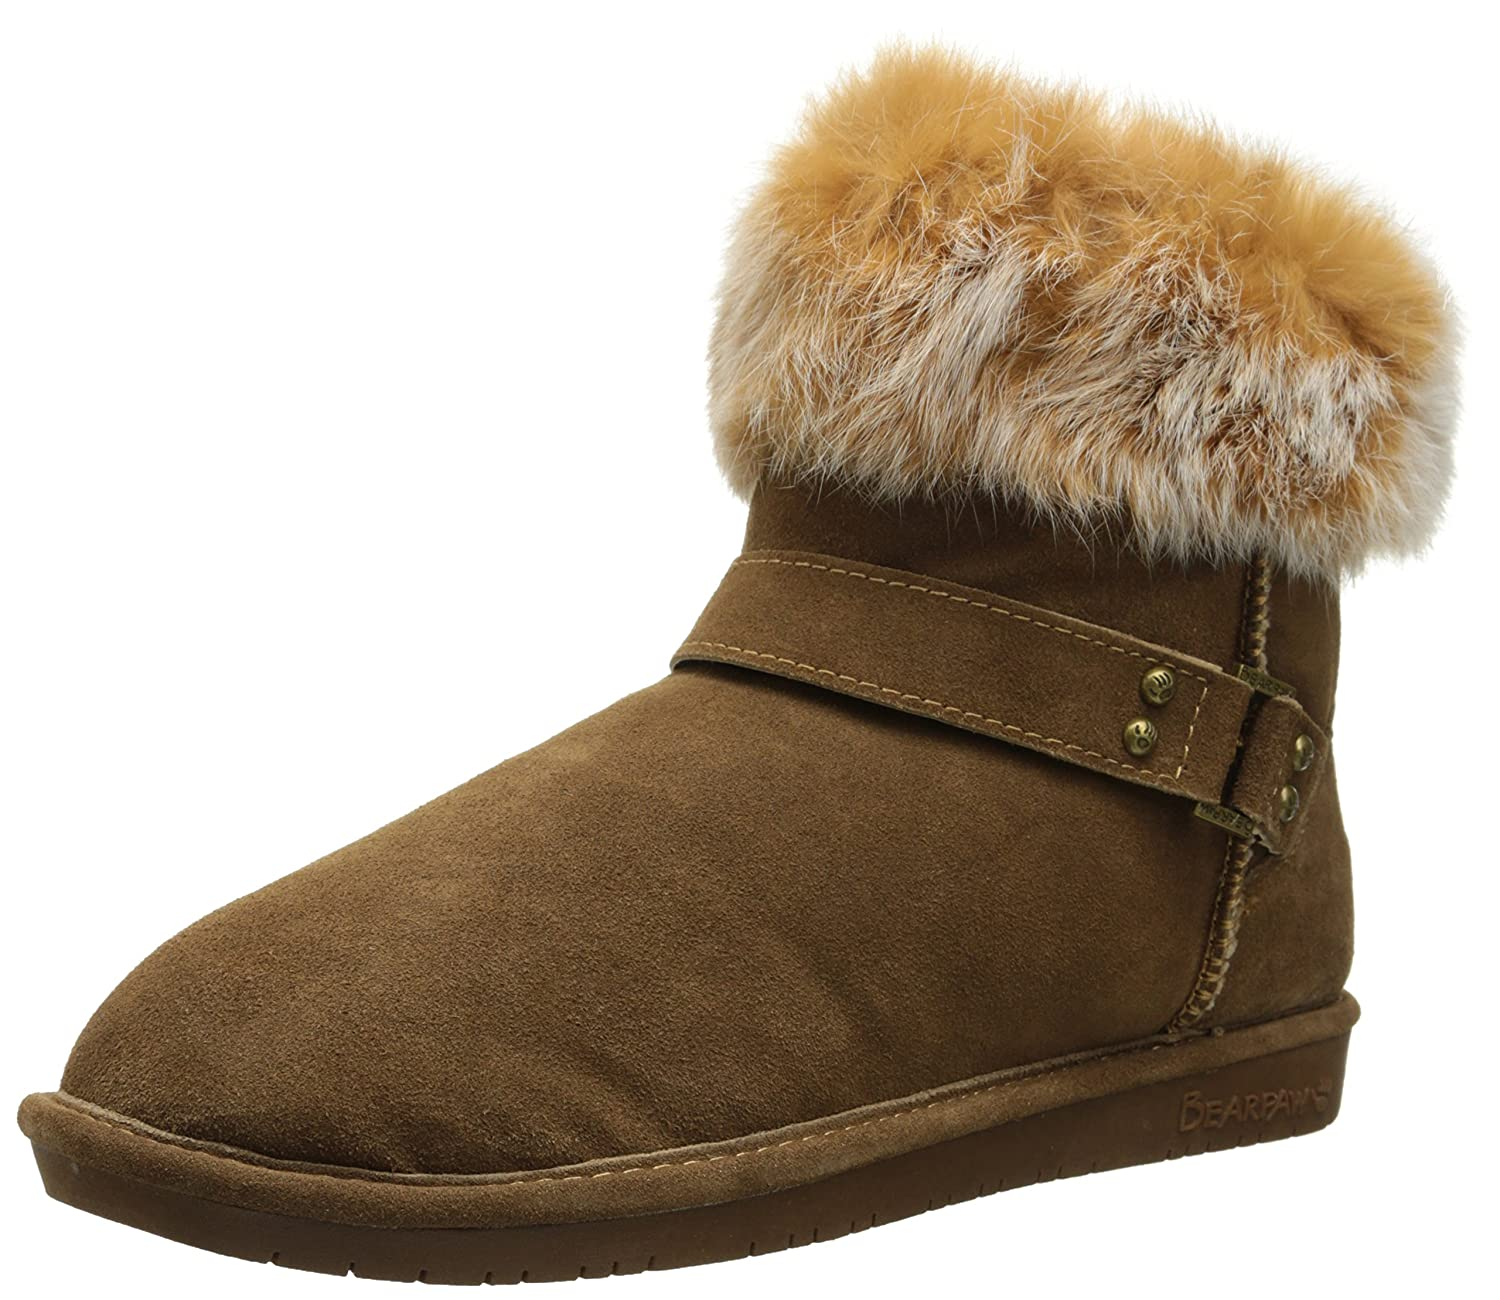 Bearpaw Womens EMMA SHORT Round Toe Suede Cold Weather Boots B00J95XJ9G 10 B(M) US Hickory Multi Fur Hickory Multi Fur 10 B(M) US